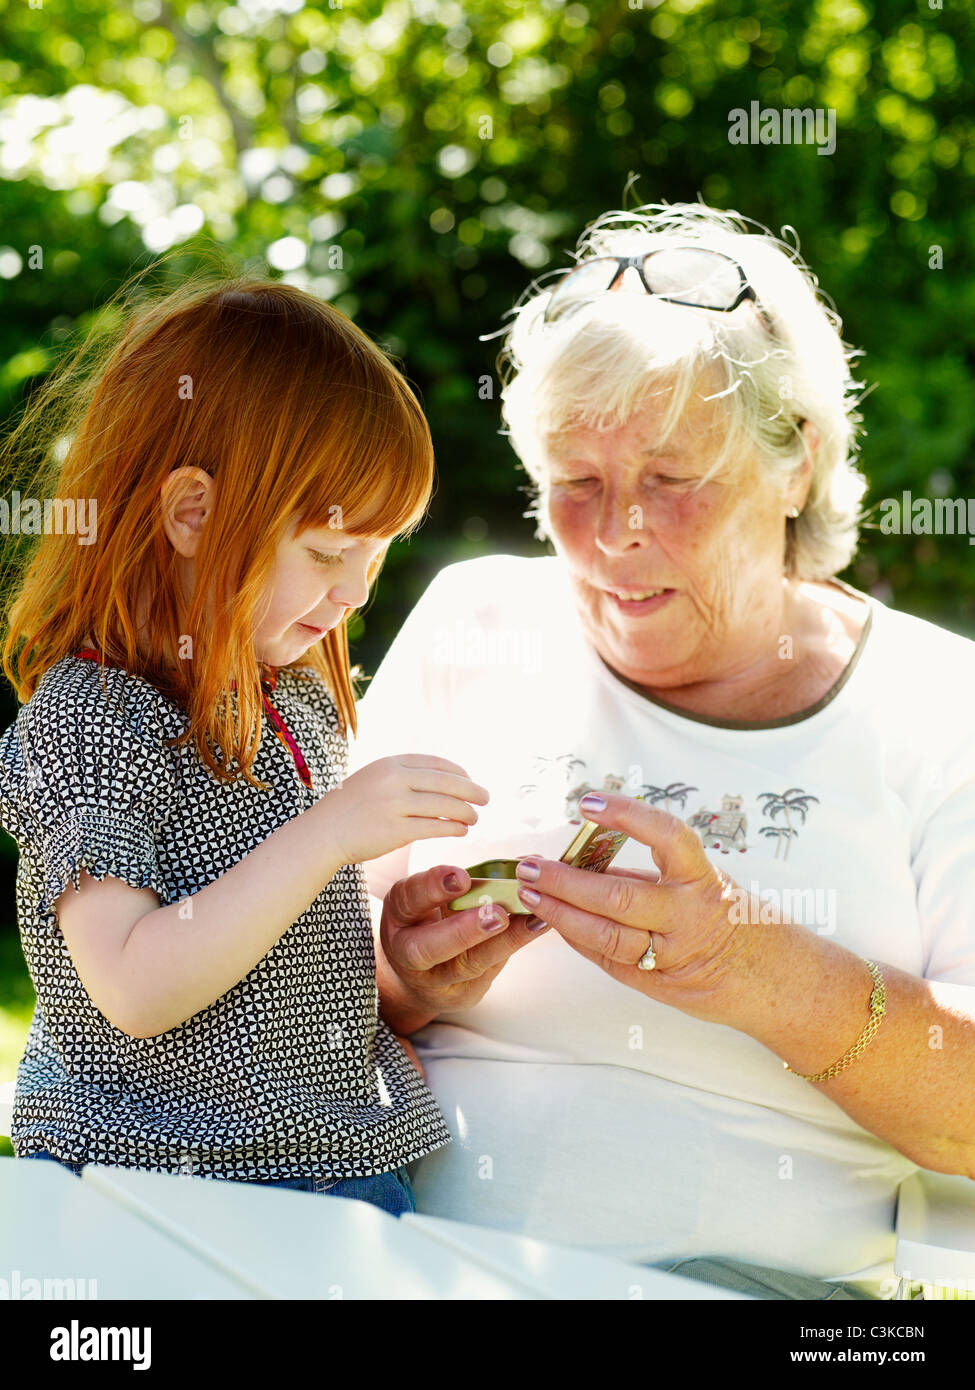 Grandmother and granddaughter eating hard candies in garden - Stock Image